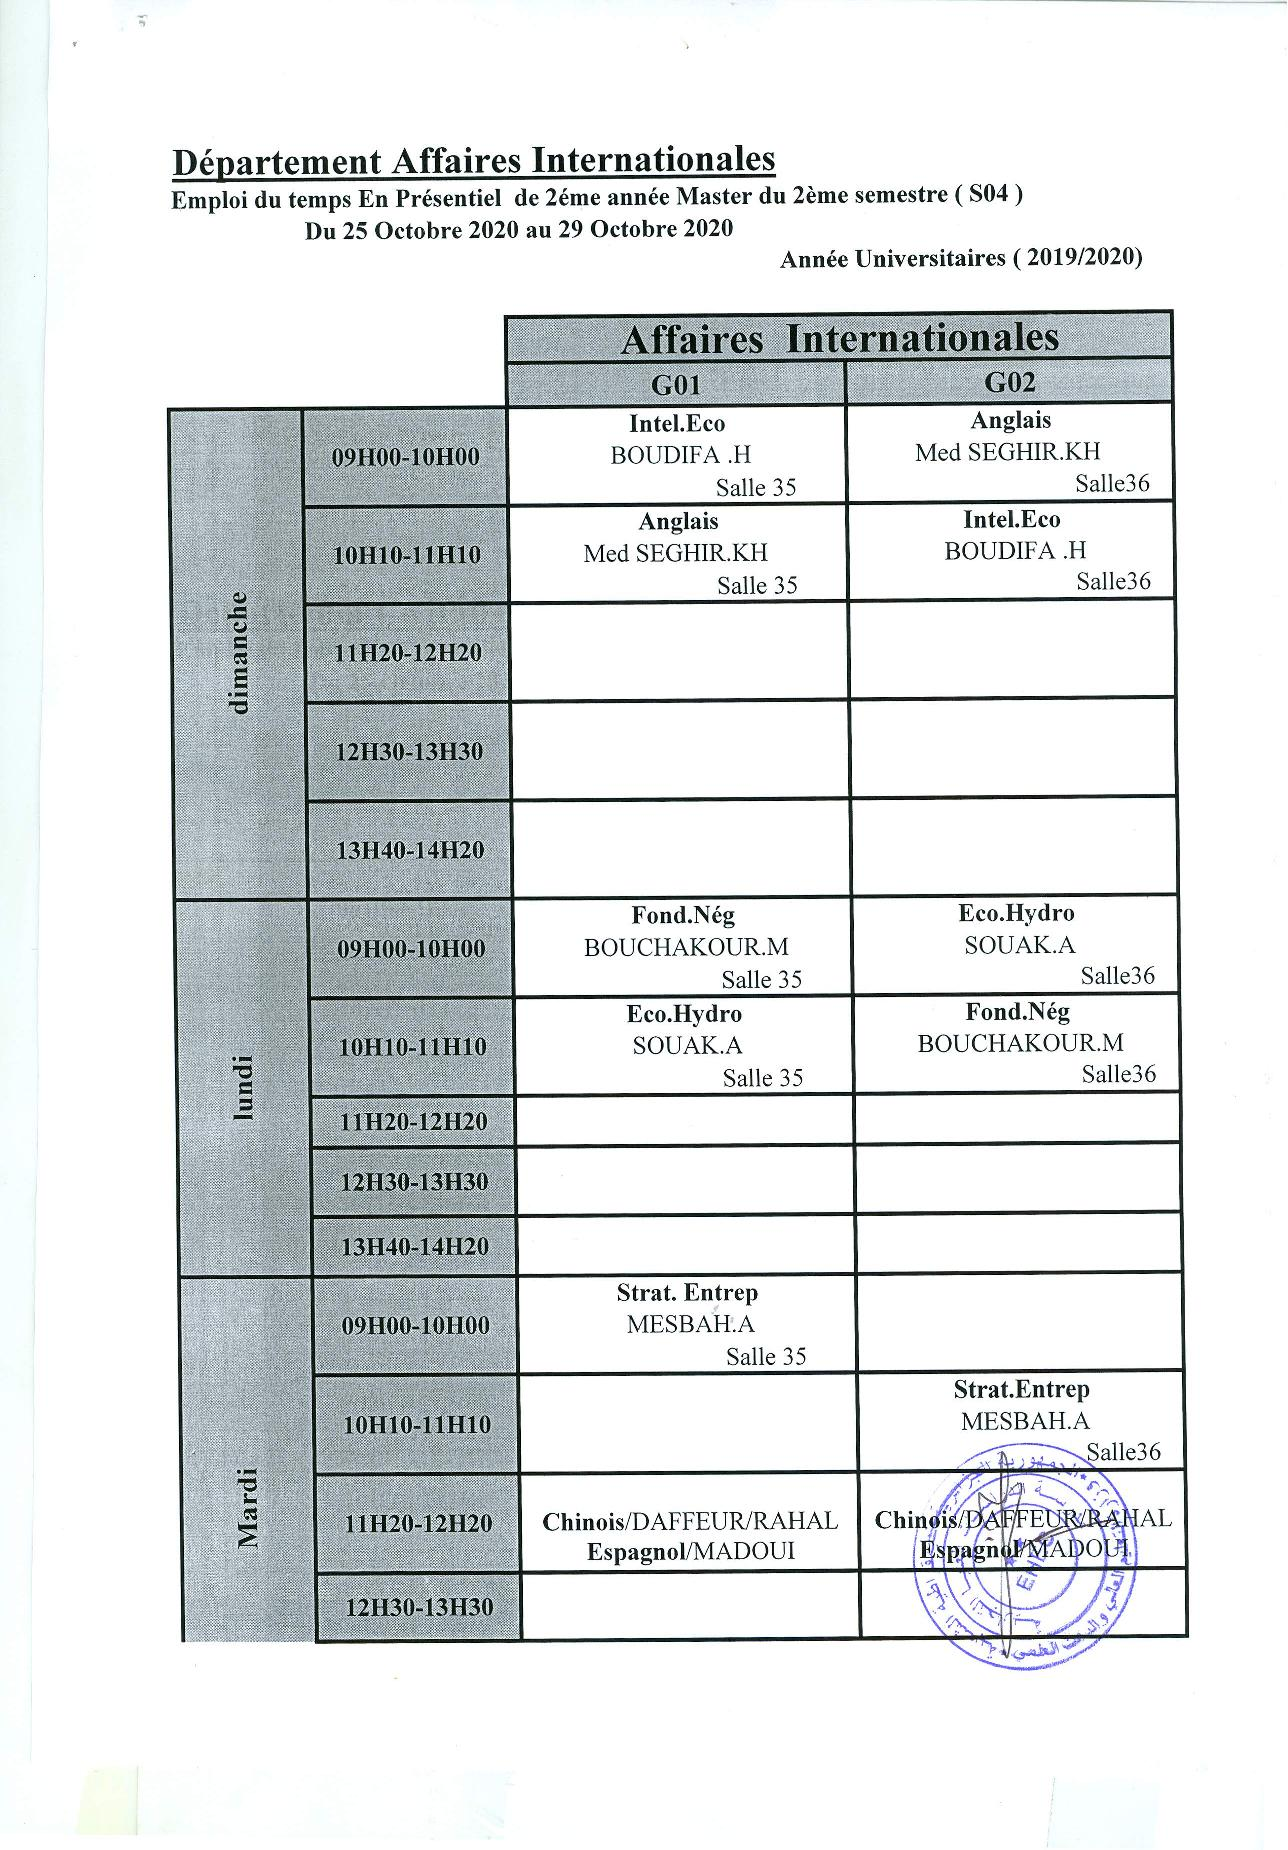 Timetable of International Affairs Department